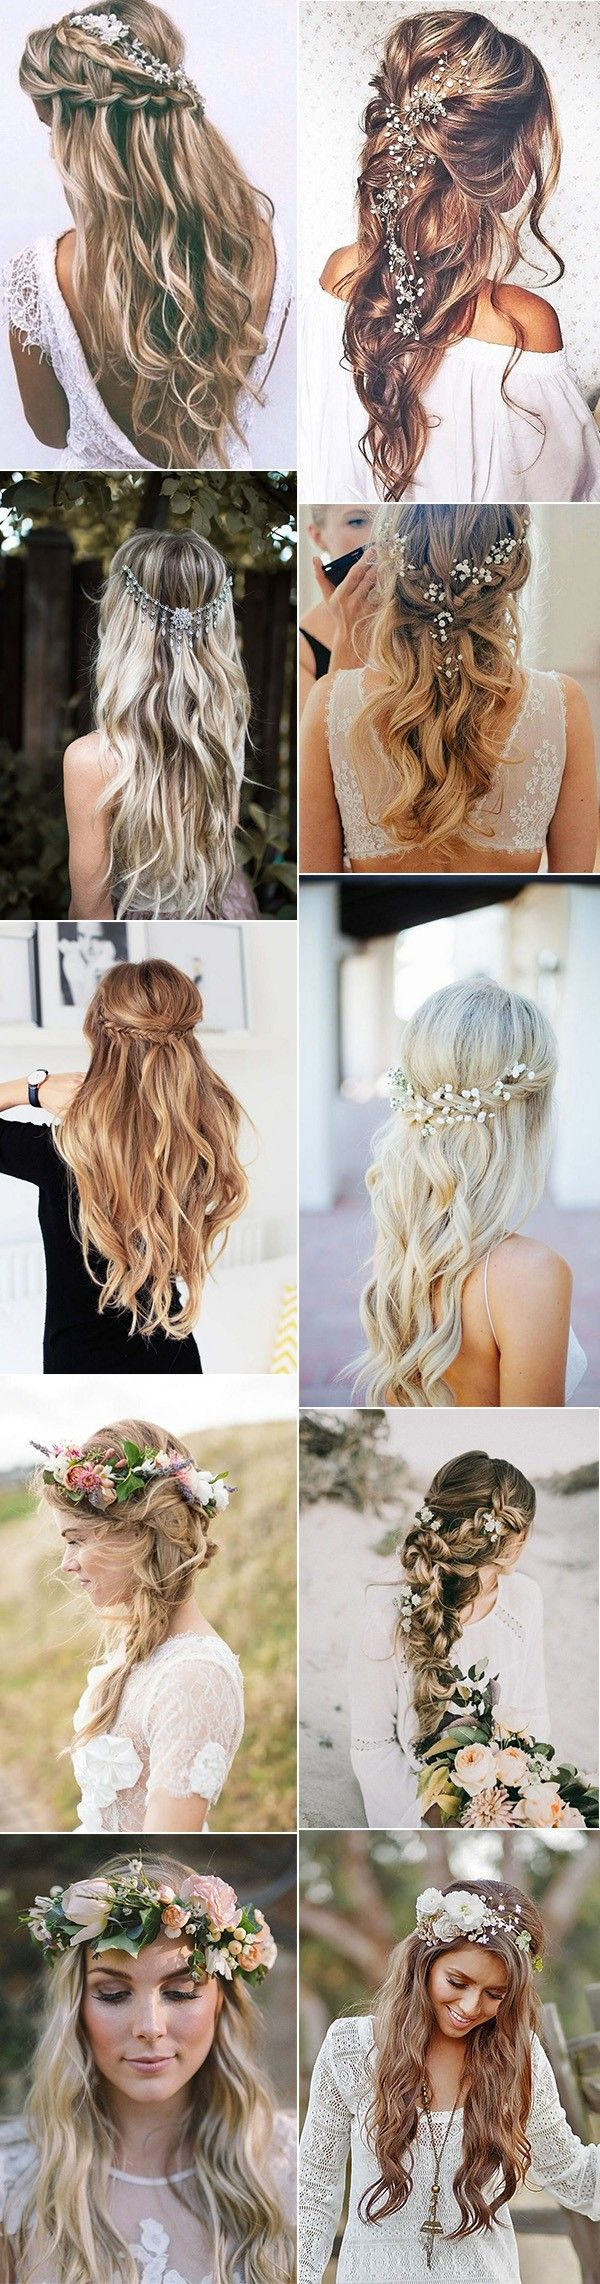 20 boho chic wedding hairstyles for your big day | hair and